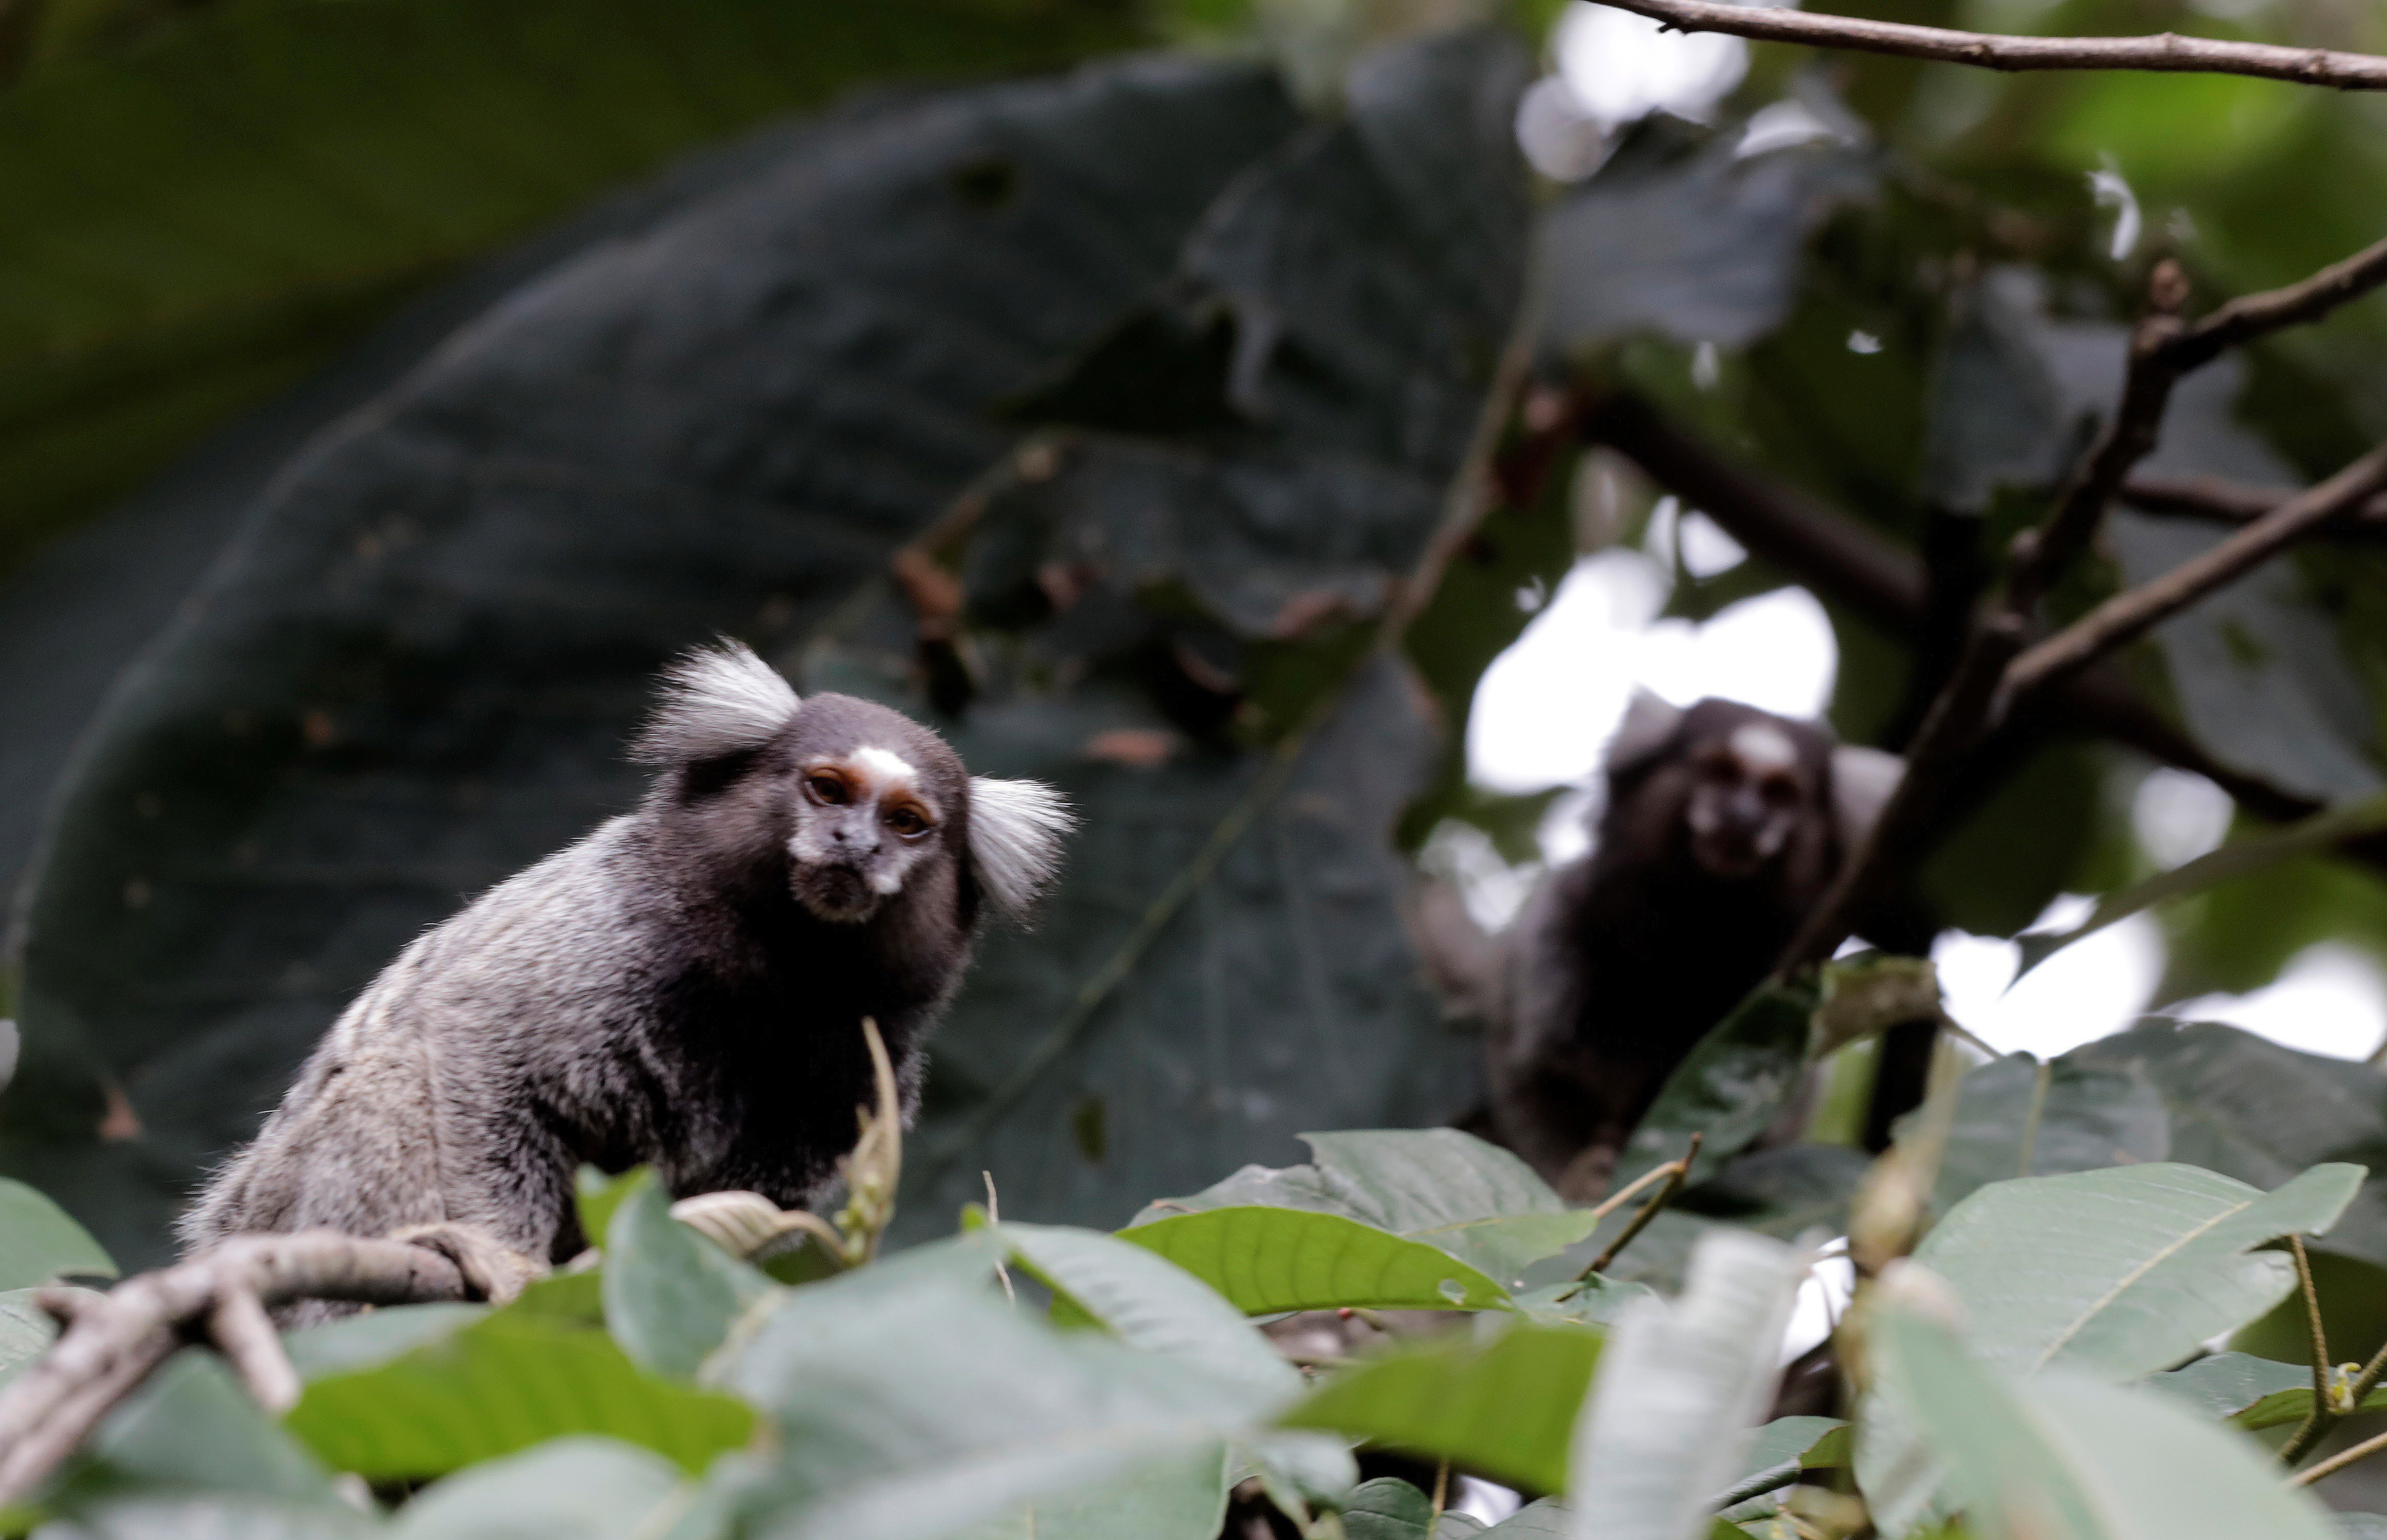 Callithrix monkeys are seen in an Atlantic forest area in Mairipora, Brazil showing how diverse the area is